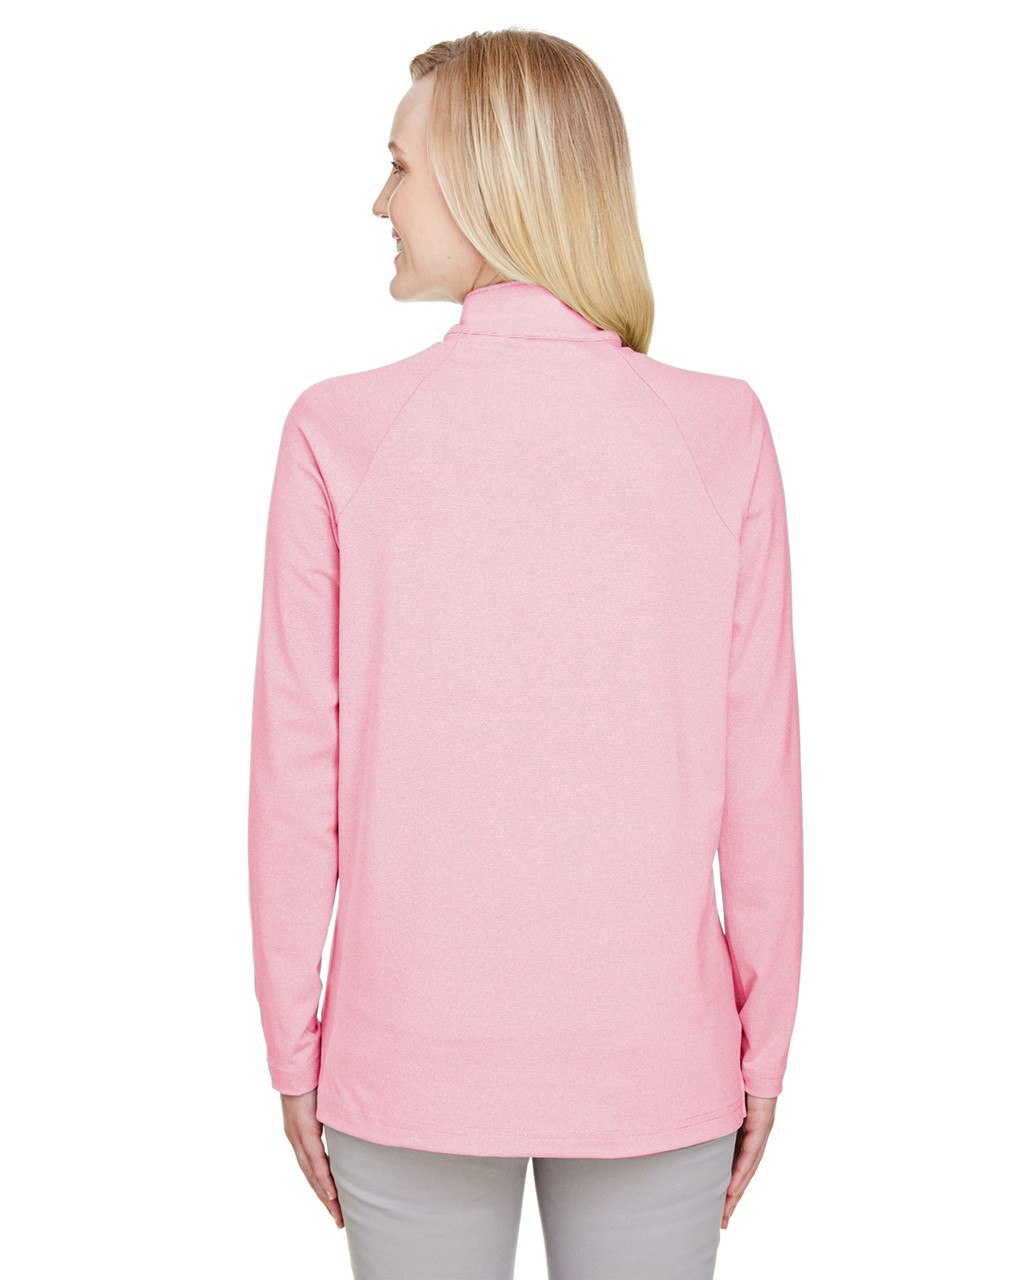 Red, Back - DG480W Devon & Jones Ladies' CrownLux Performance™ Clubhouse Micro-Stripe Quarter-Zip Active Shirt | BlankClothing.ca